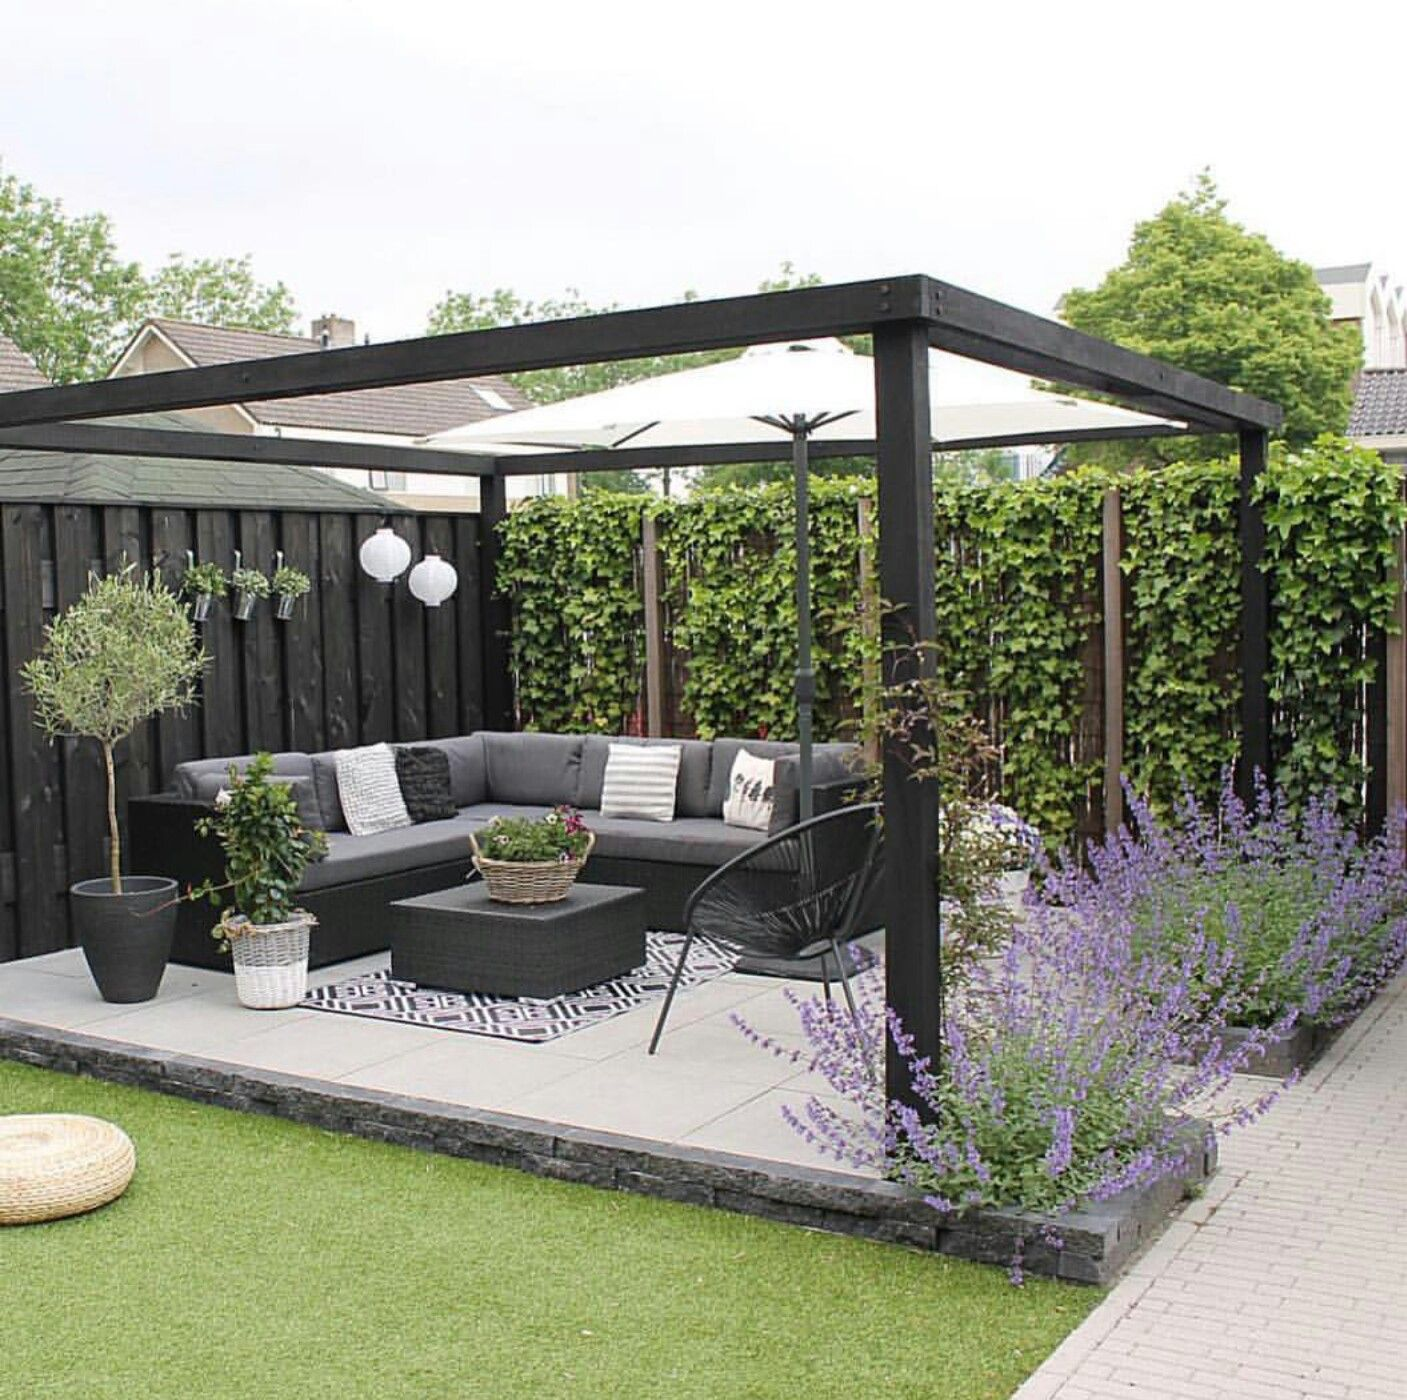 one day | garden ideas | garden seating, backyard